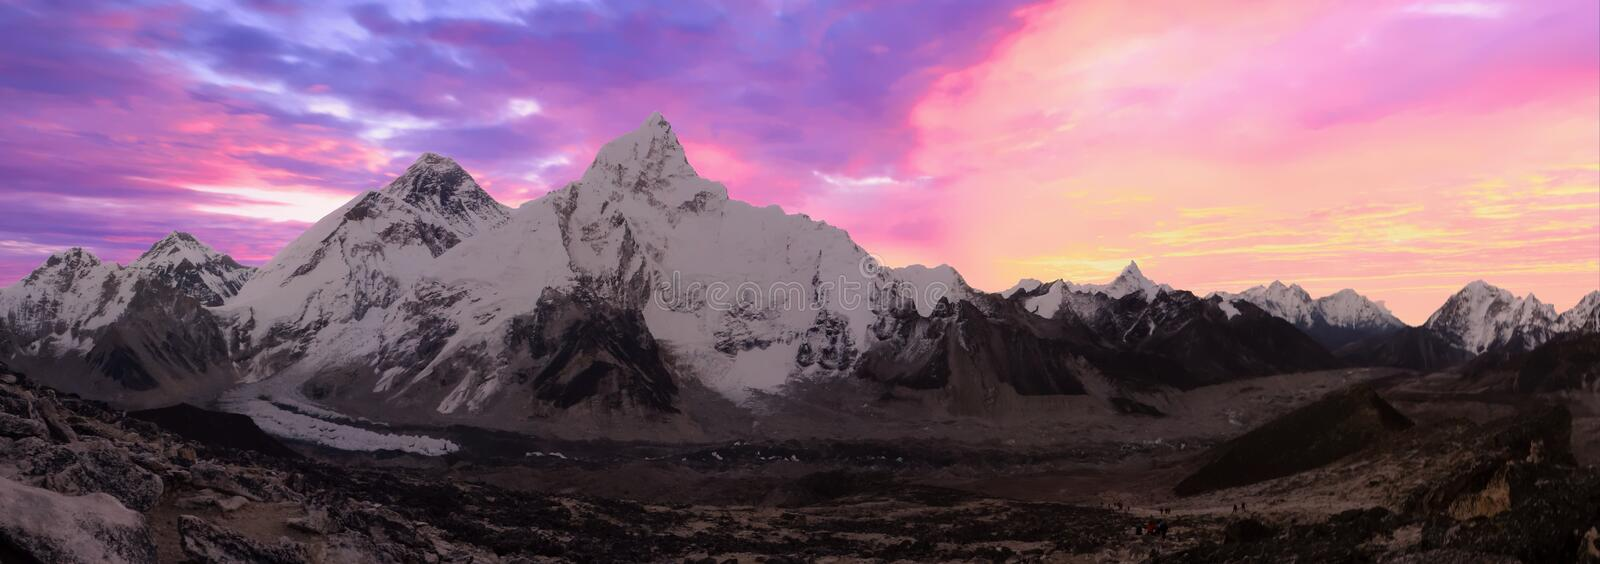 La gamma di everest all'alba da Kala Patthar, Gorak Shep, viaggio del campo base di Everest, Nepal fotografia stock